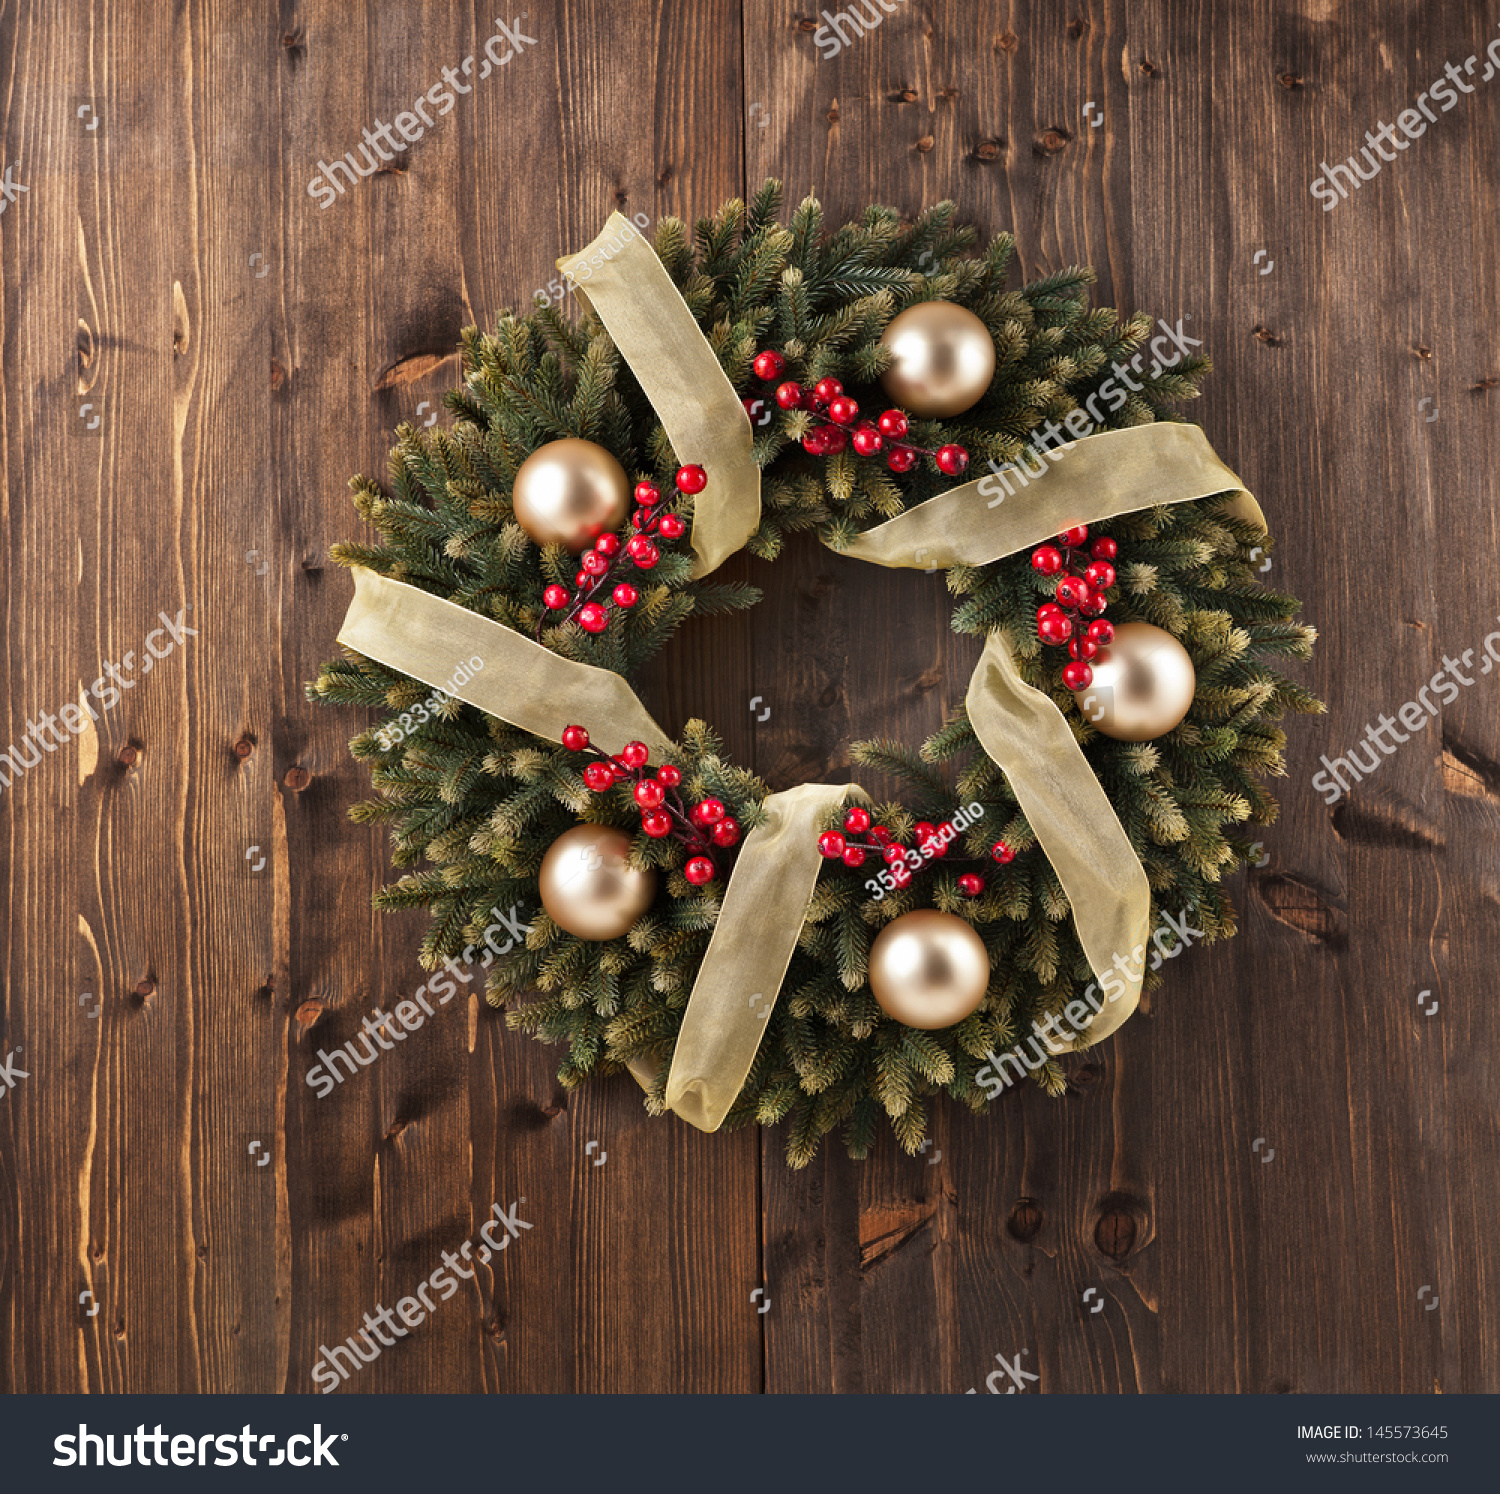 Advent Christmas Wreath On Wooden Door Decoration Stock